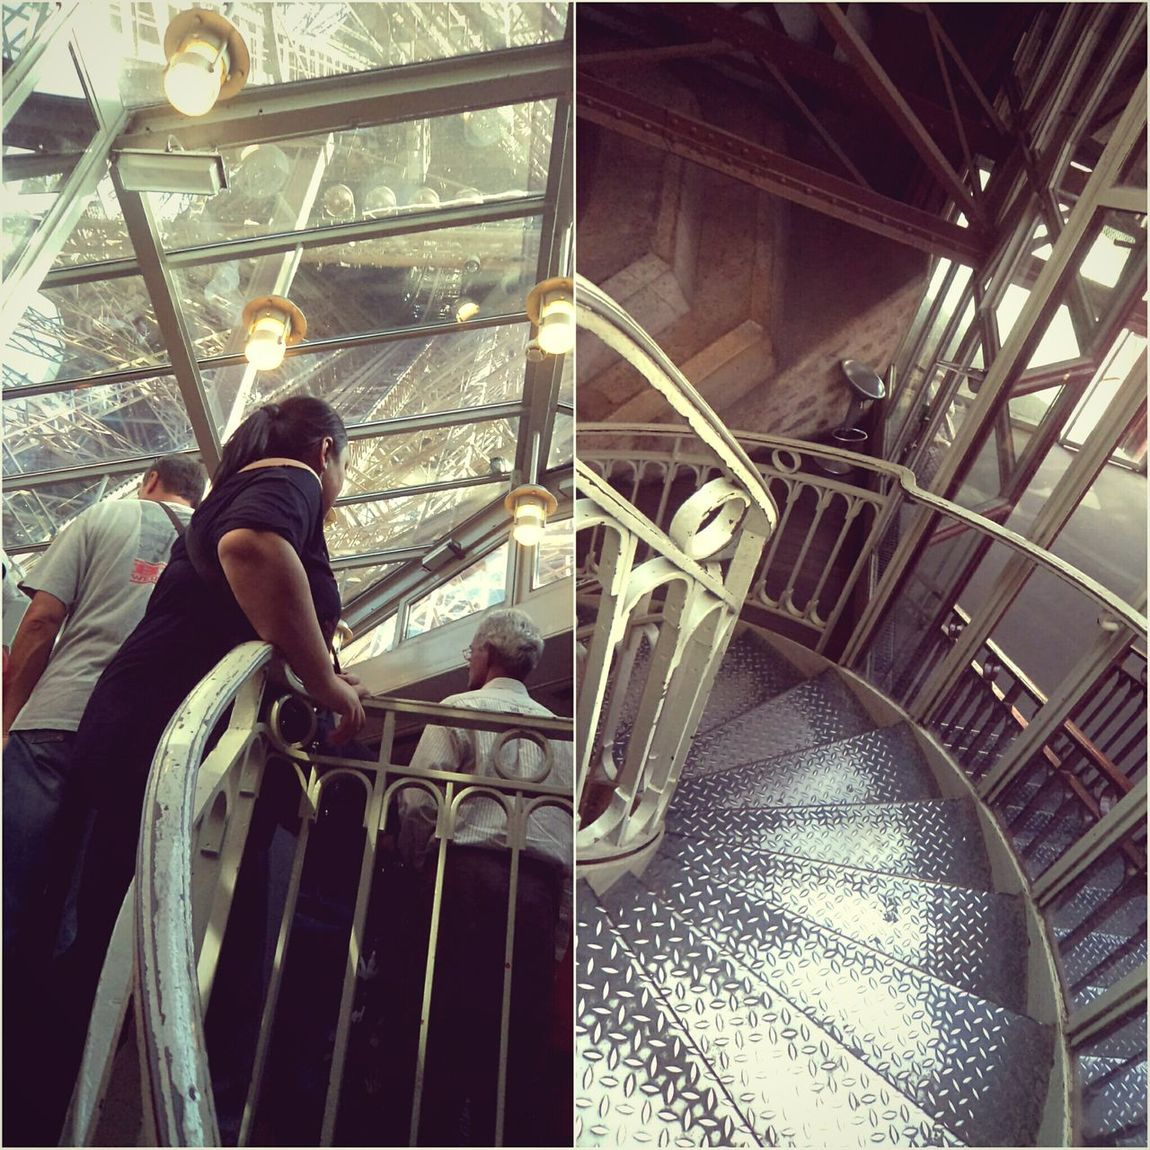 """In Between Two Steps"". Throwback to when we visited the Eiffel Tower in Paris in 2011. Standing in line with my camera as we awaited our turn, I looked up at the tower above us, and then back at the staircase behind us. Something clicked, and I knew I had to take pictures of both... There's something to be said about being one step away from trying out something new, and one step removed from the comfort of safety and sure. Life teaches you that. Paris gave me this.• 🗼💕 Paris Paris, France  Twominutehipster My Point Of View Memories Eiffel Tower Tour Eiffel Old Pic - New Edit Paris Je T Aime Paris, Tu Me Manques"